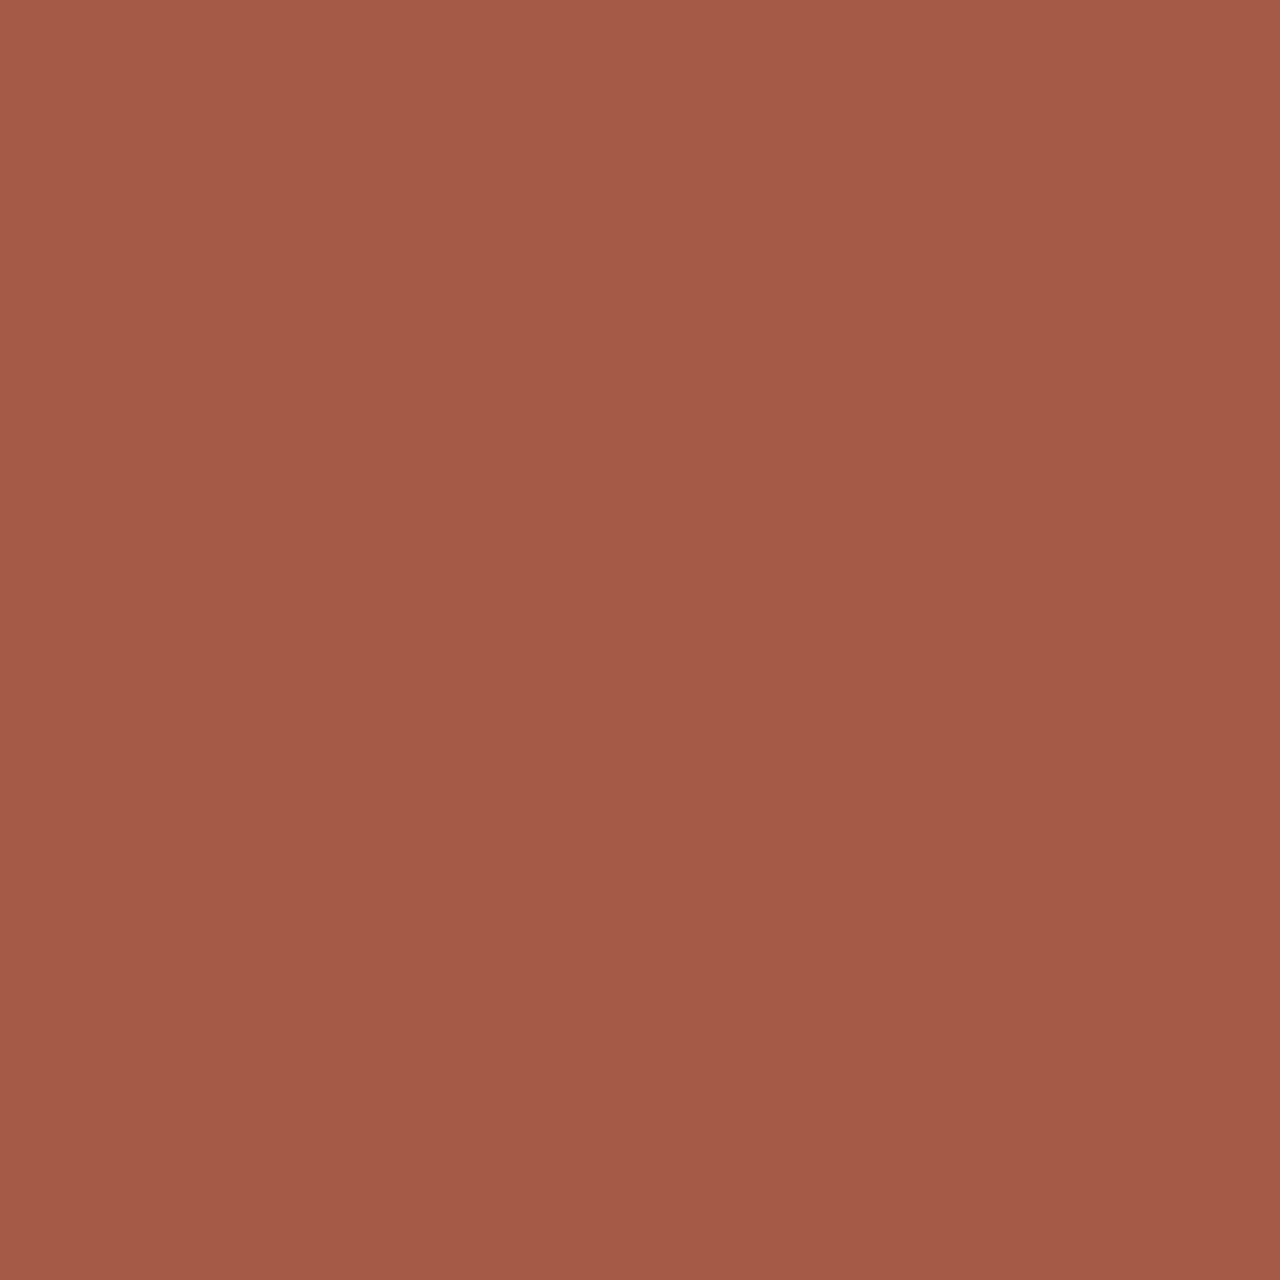 american olean quarry tile 6 x 6 canyon red abrasive flat tile